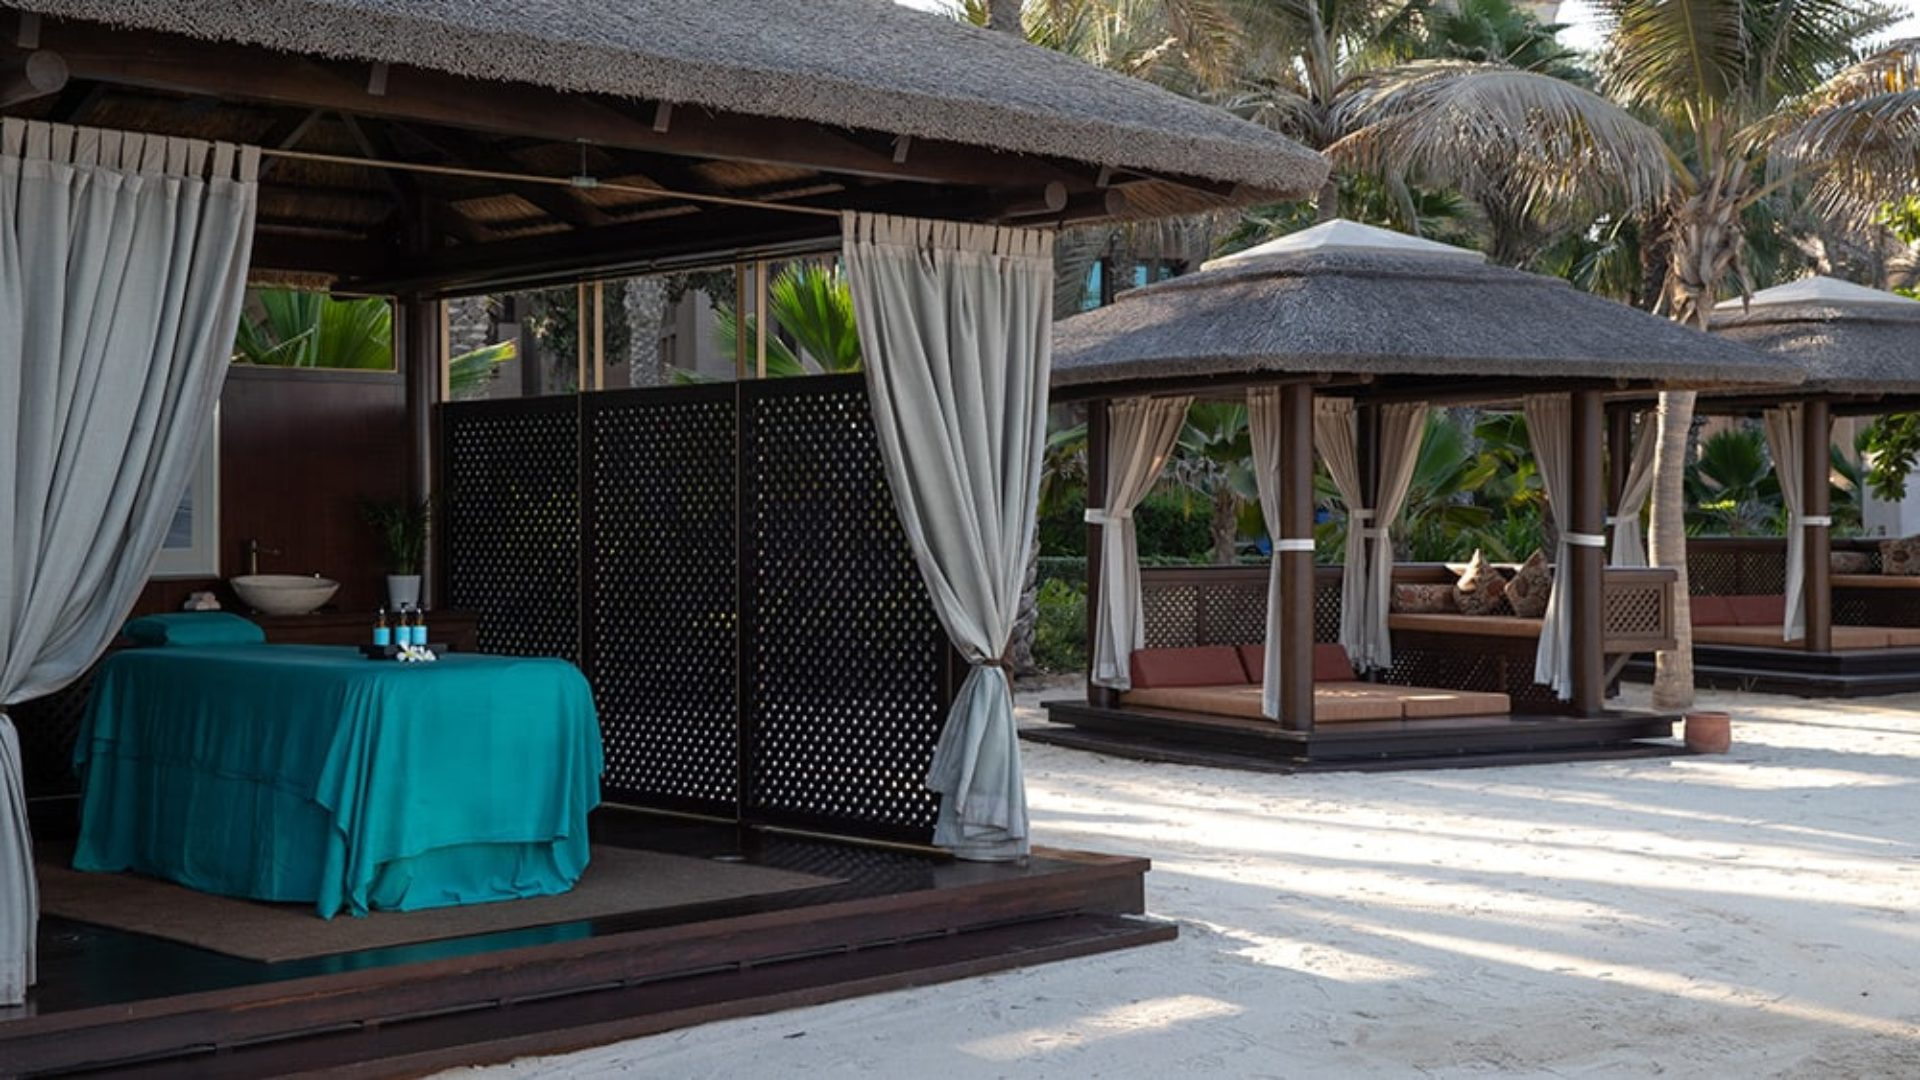 Beach spa cabanas at Jumeirah Dar Al Masyaf